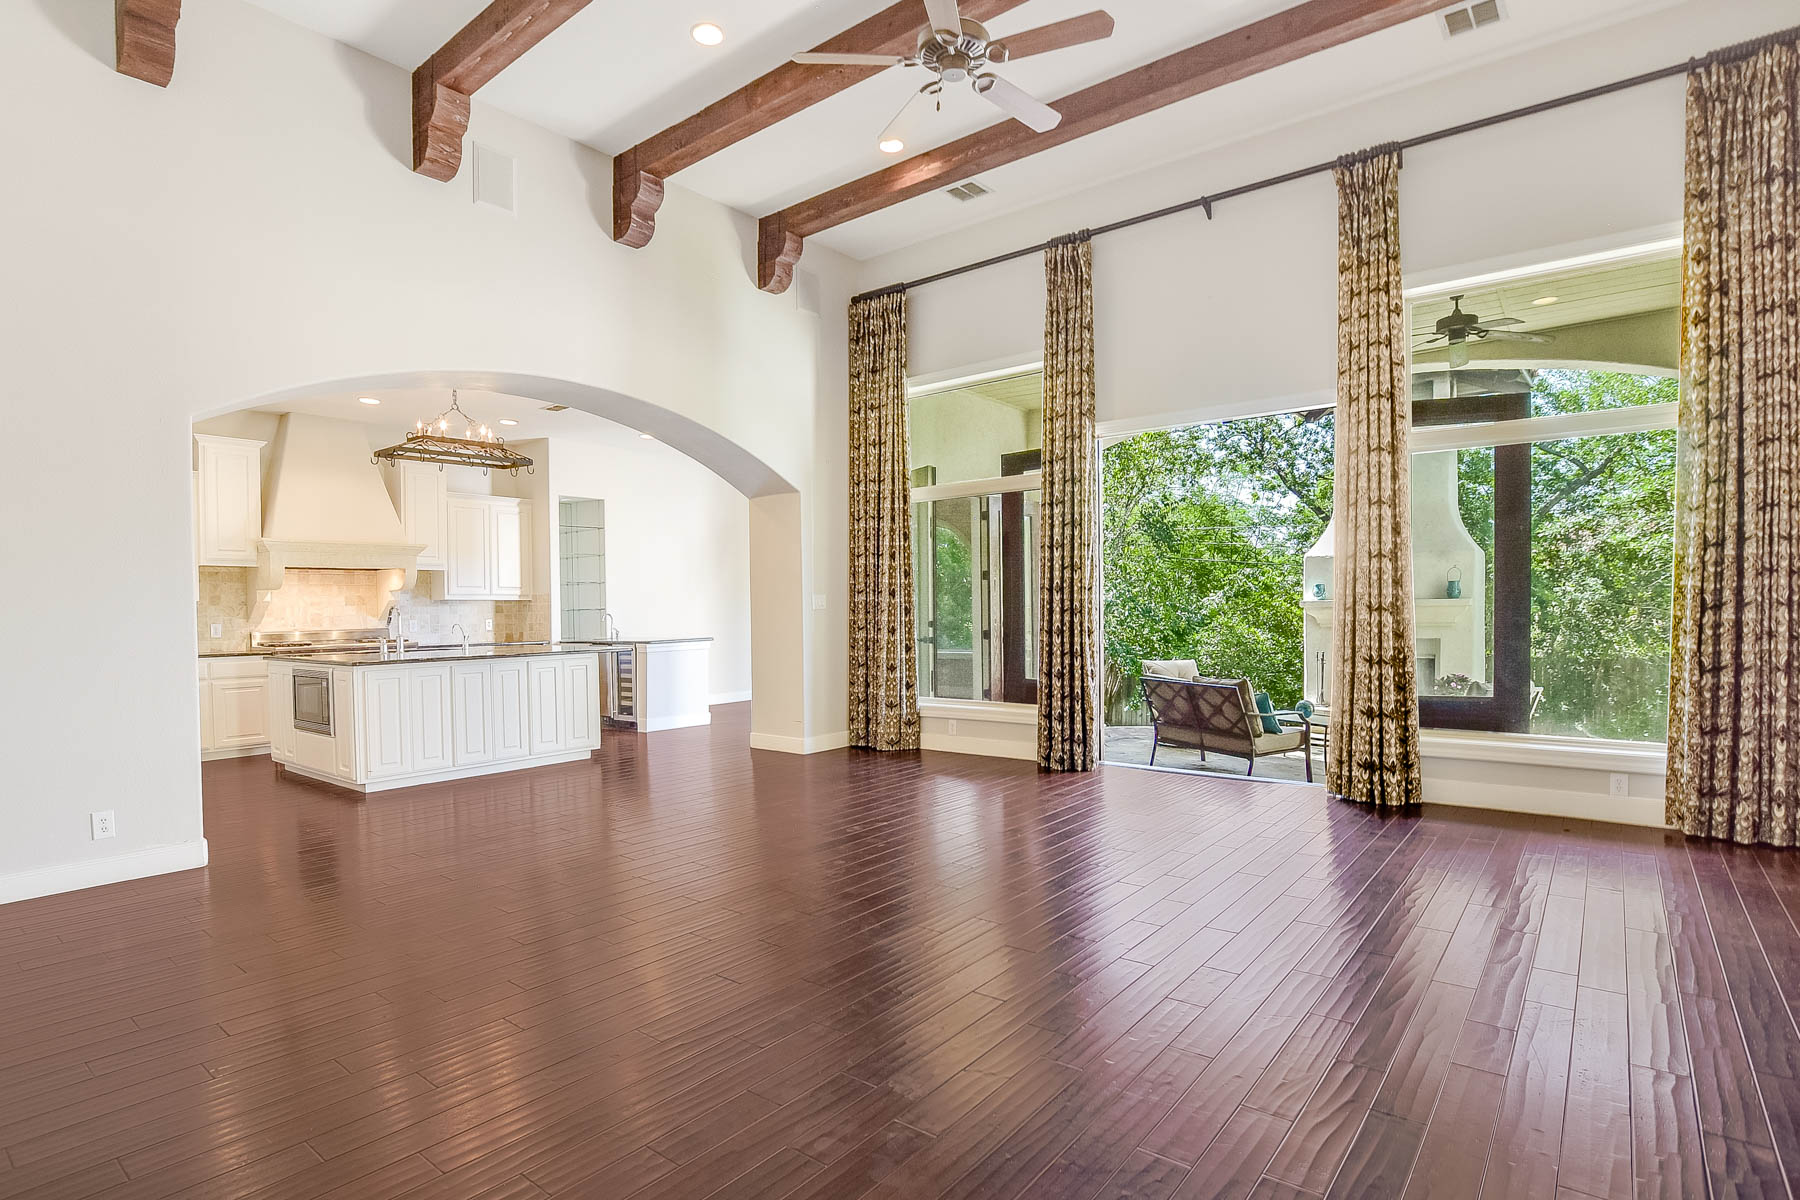 Additional photo for property listing at Mediterranean Custom Home in Terrell Hills 312 Lilac Ln San Antonio, Texas 78209 United States